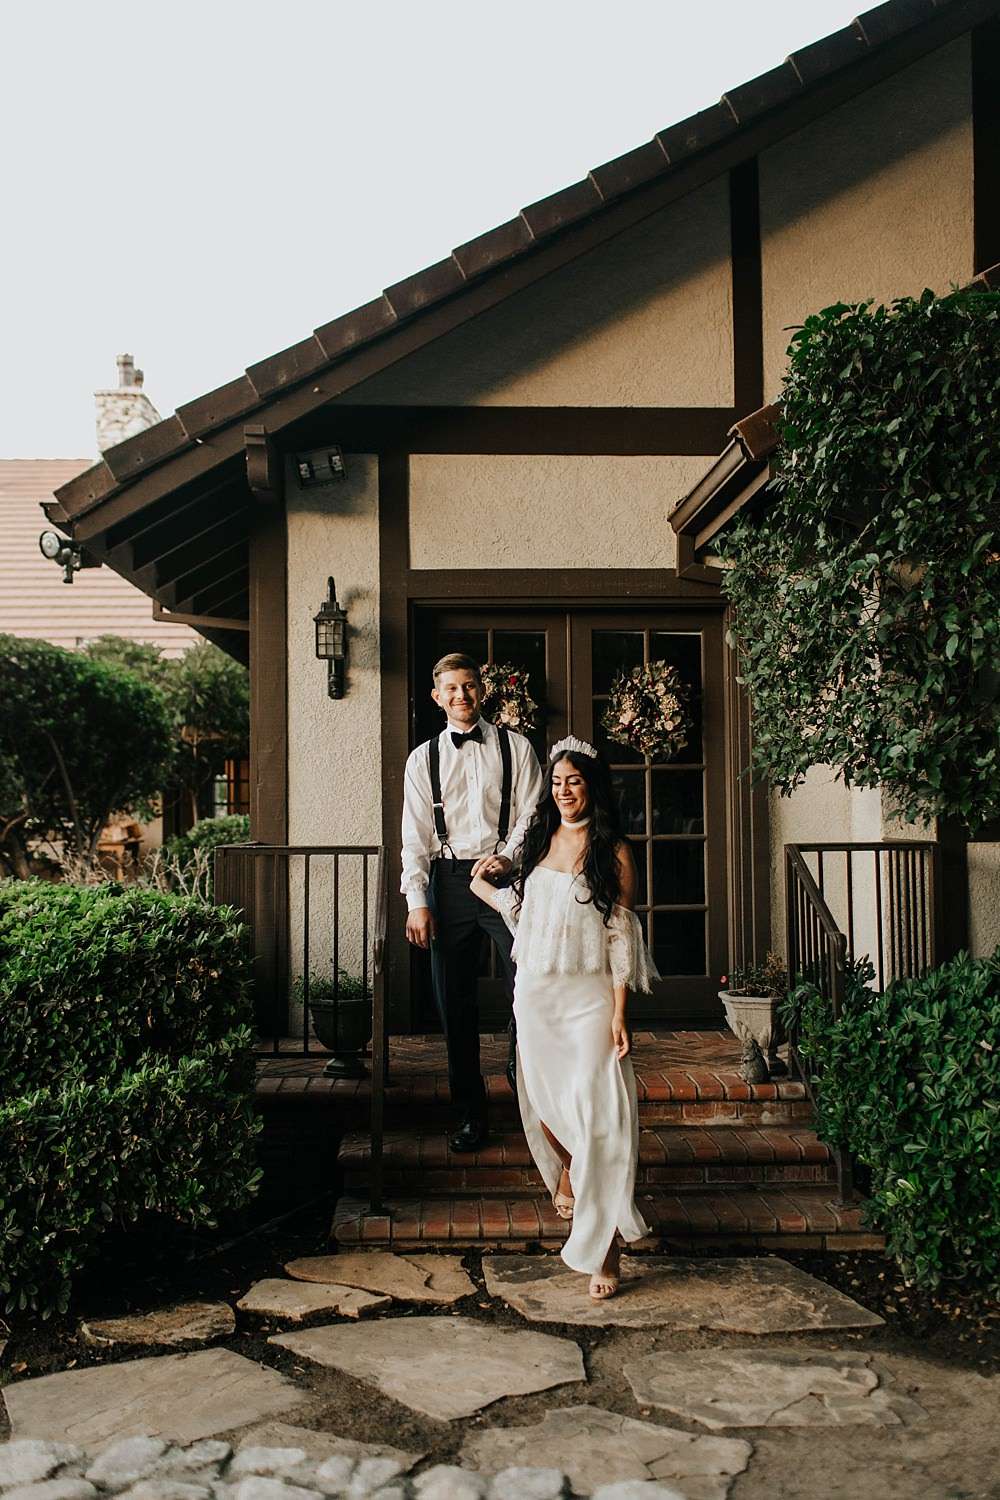 Los Angeles Wedding Photographer | http://alexandriamonette.com